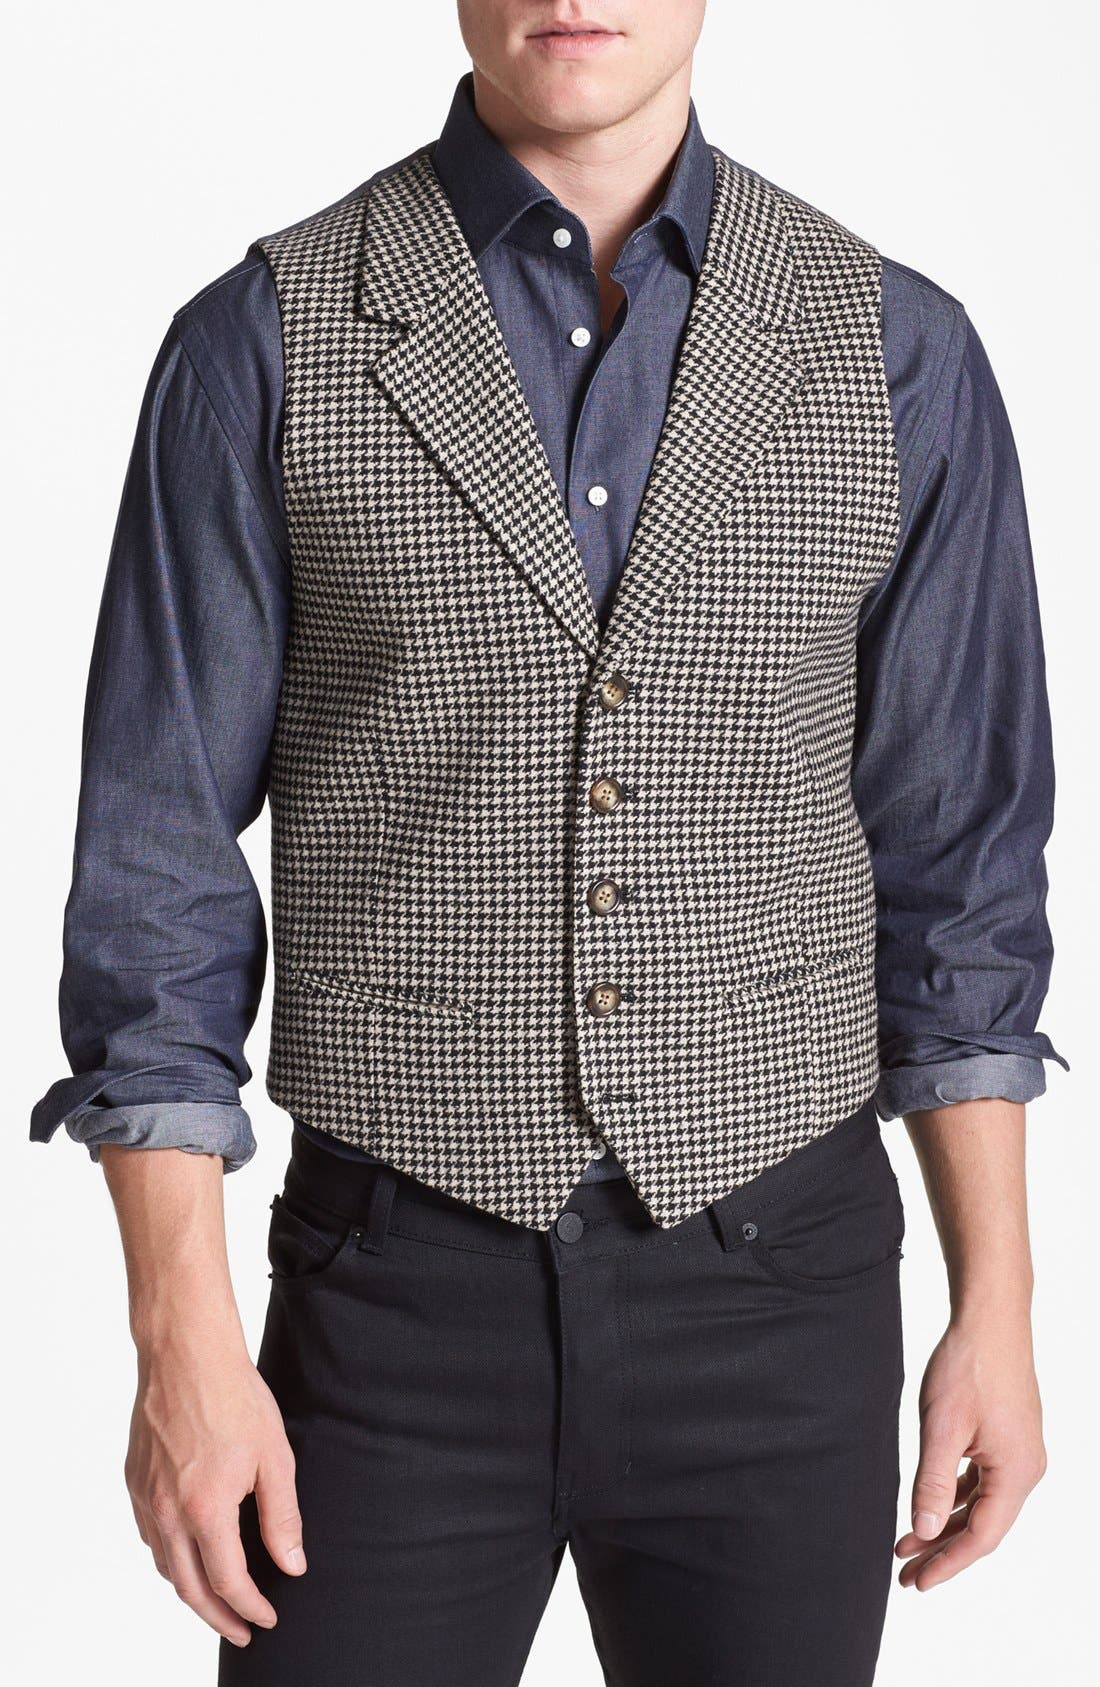 Main Image - Wallin & Bros. Trim Fit Houndstooth Vest